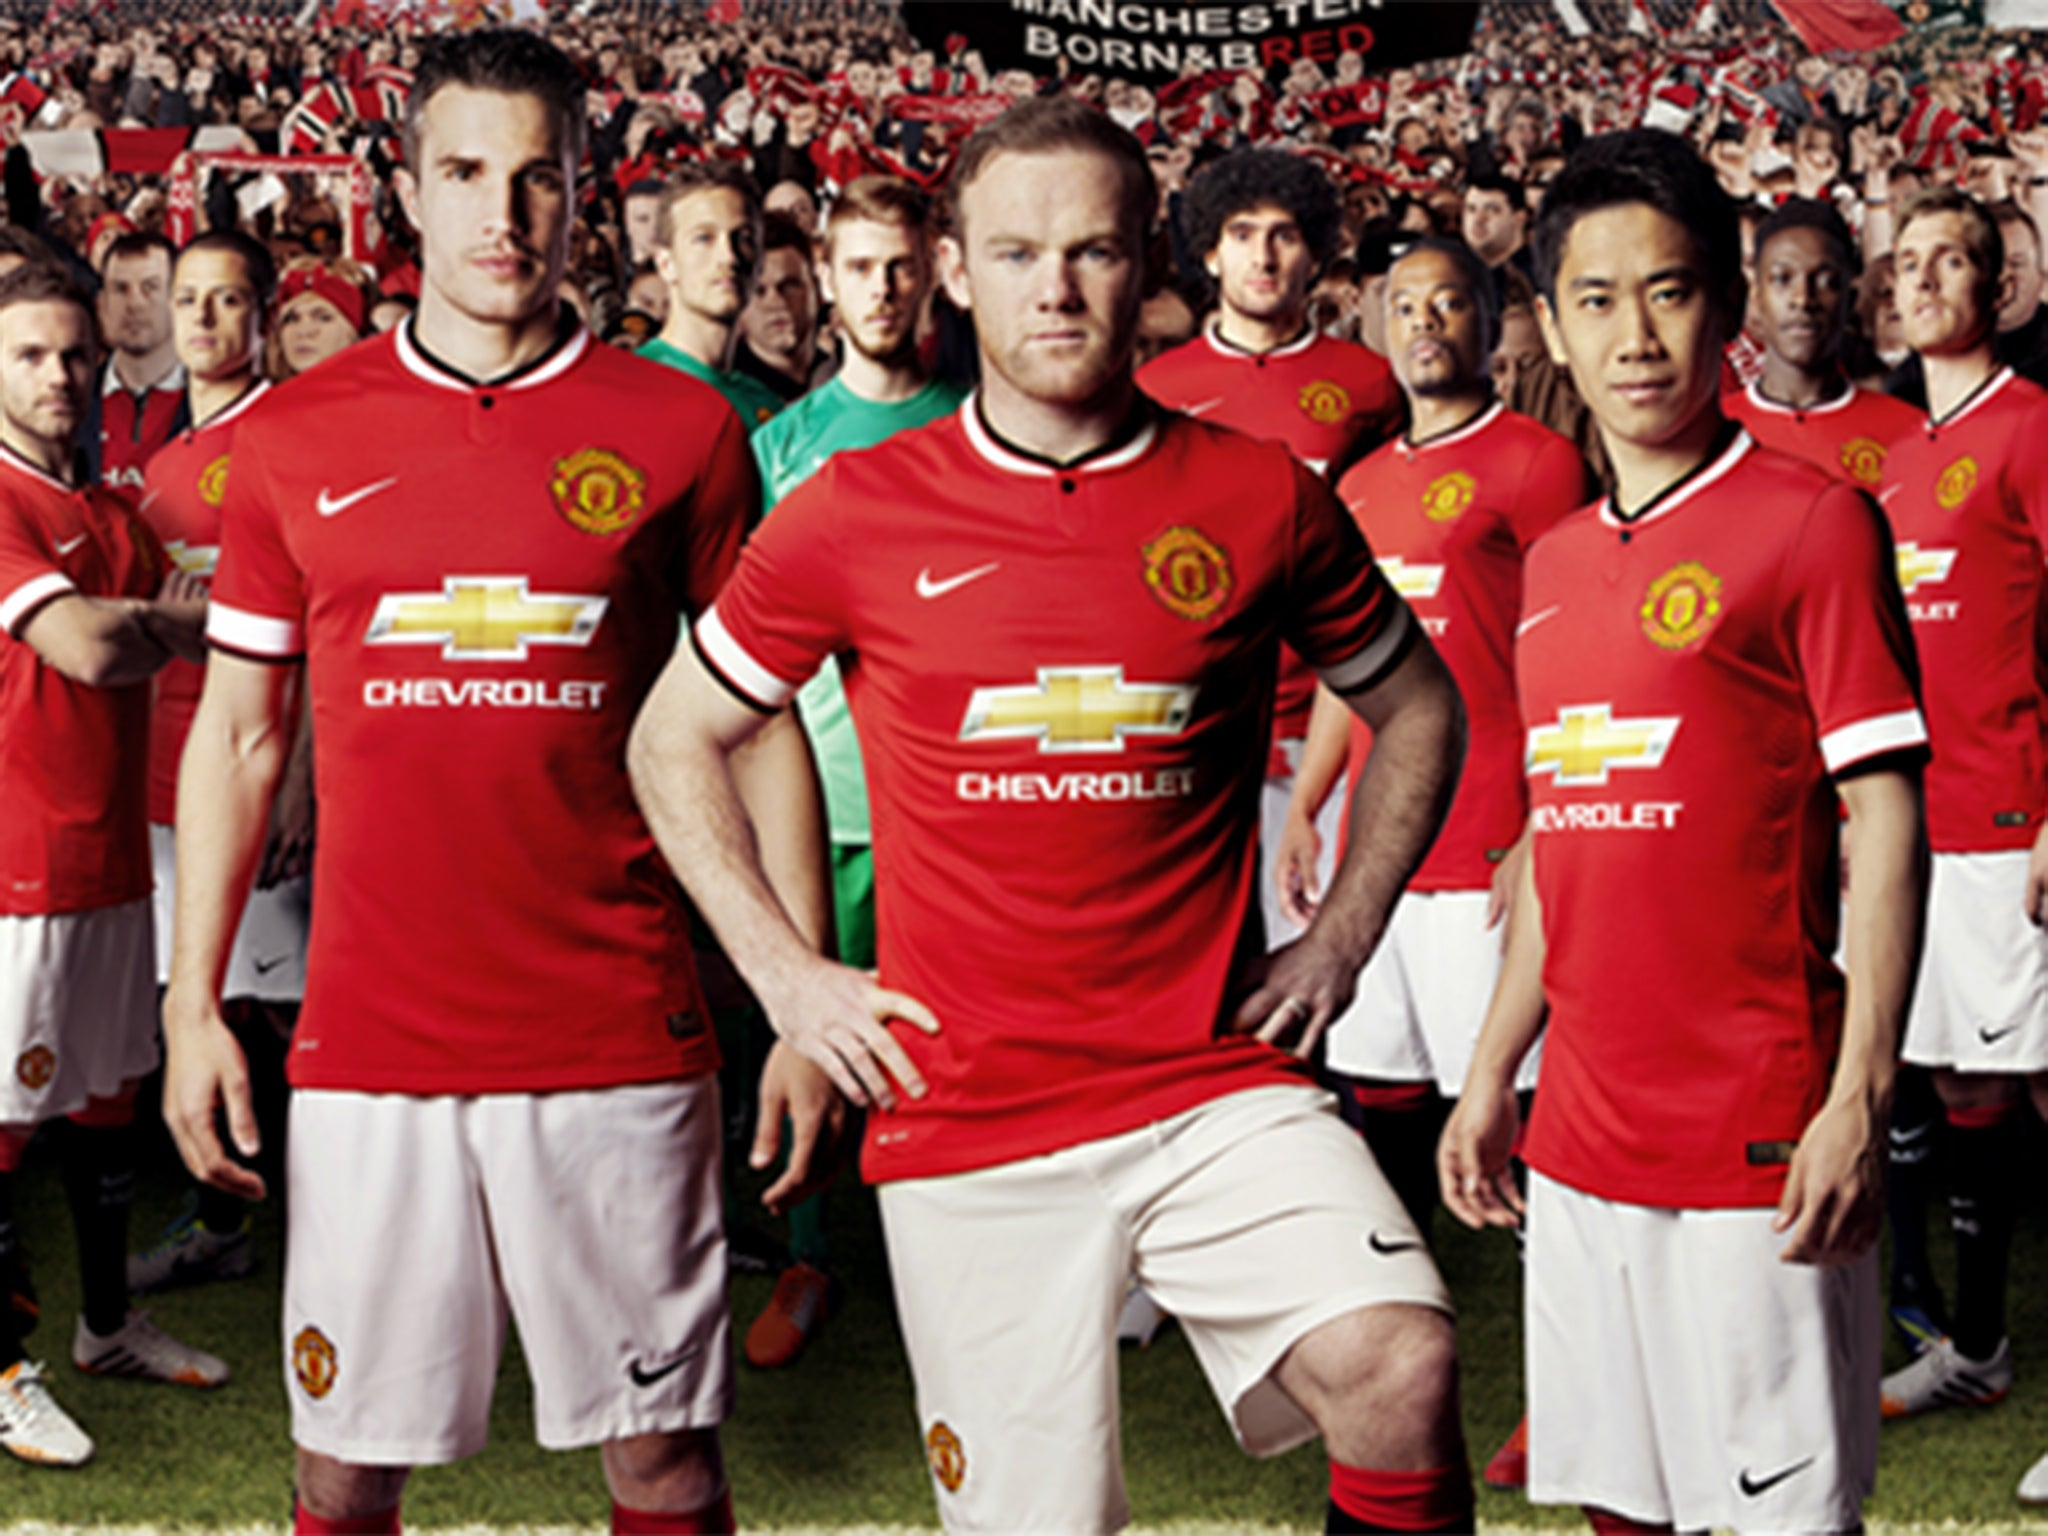 91f1230d0 CONFIRMED  Nike to end Manchester United kit deal over excessive demands